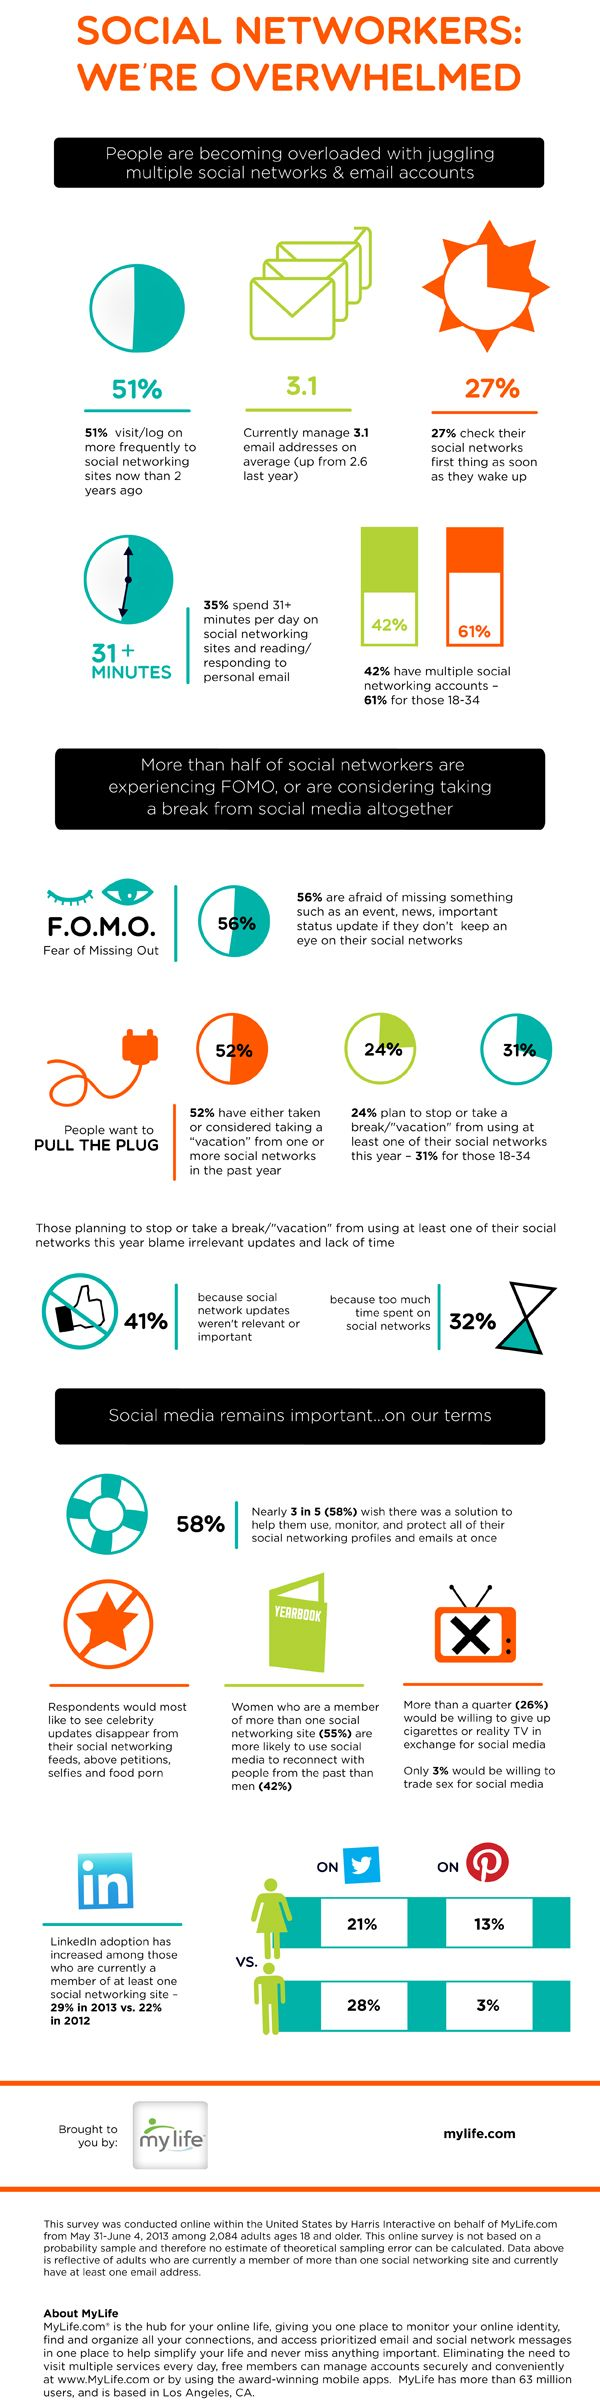 "MyLife recently wrapped up a national survey on social media behavior. The study reveals that social networkers are growing even more overwhelmed with juggling the increasing number of social networks and email accounts they manage, resulting in a Fear of Missing Out (FOMO), and consideration of a ""vacation"" from social media altogether. Check out the results in the infographi.c."